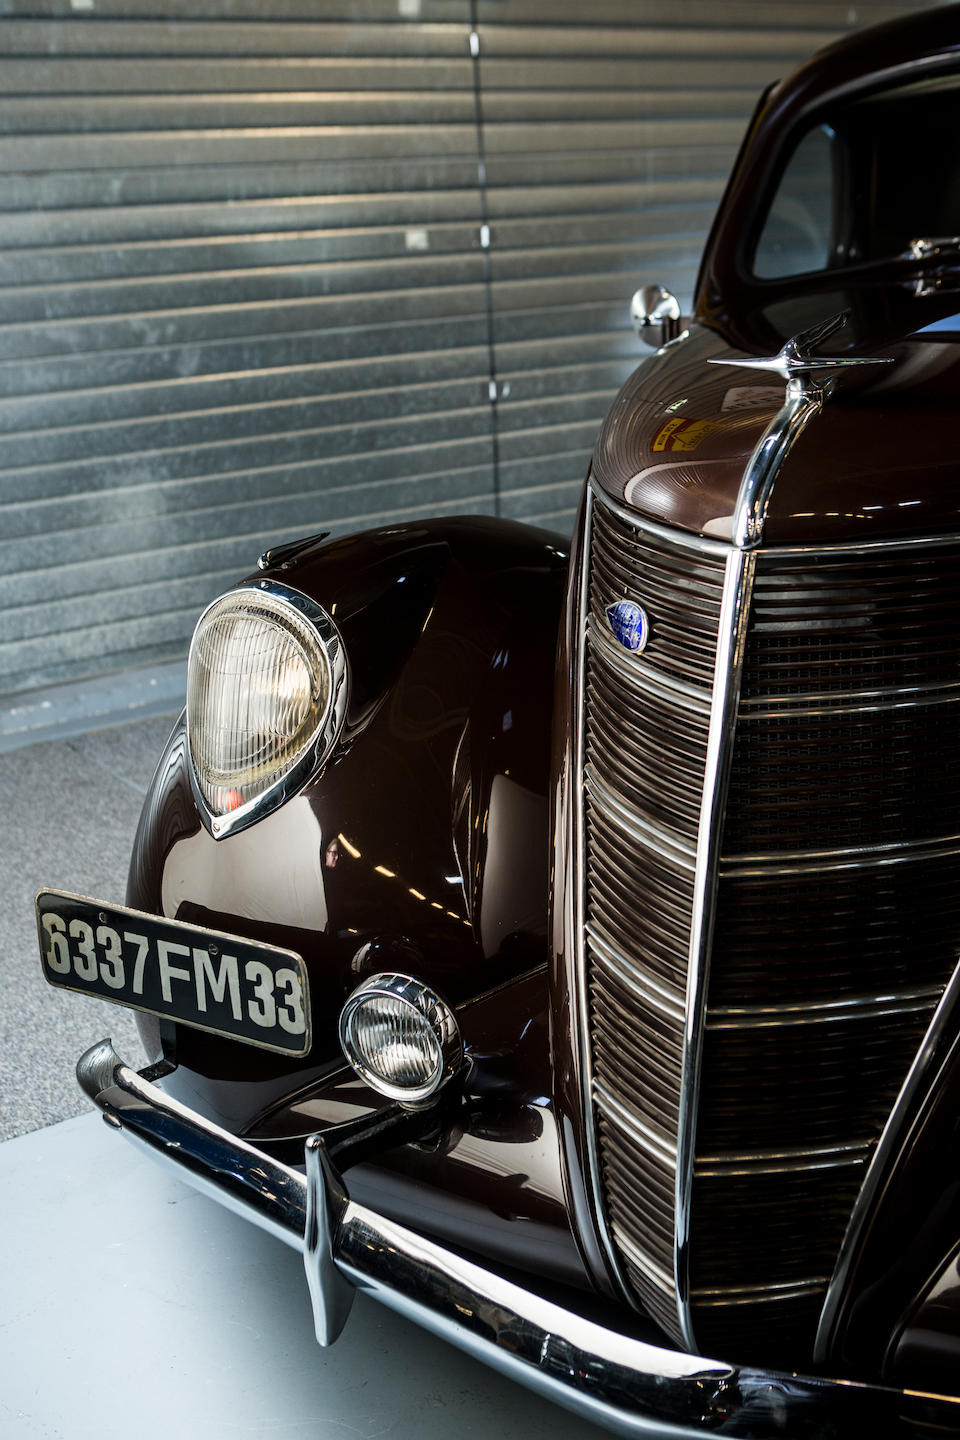 <b>1937 Lincoln Zephyr Coupe</b><br />Engine no. 8351